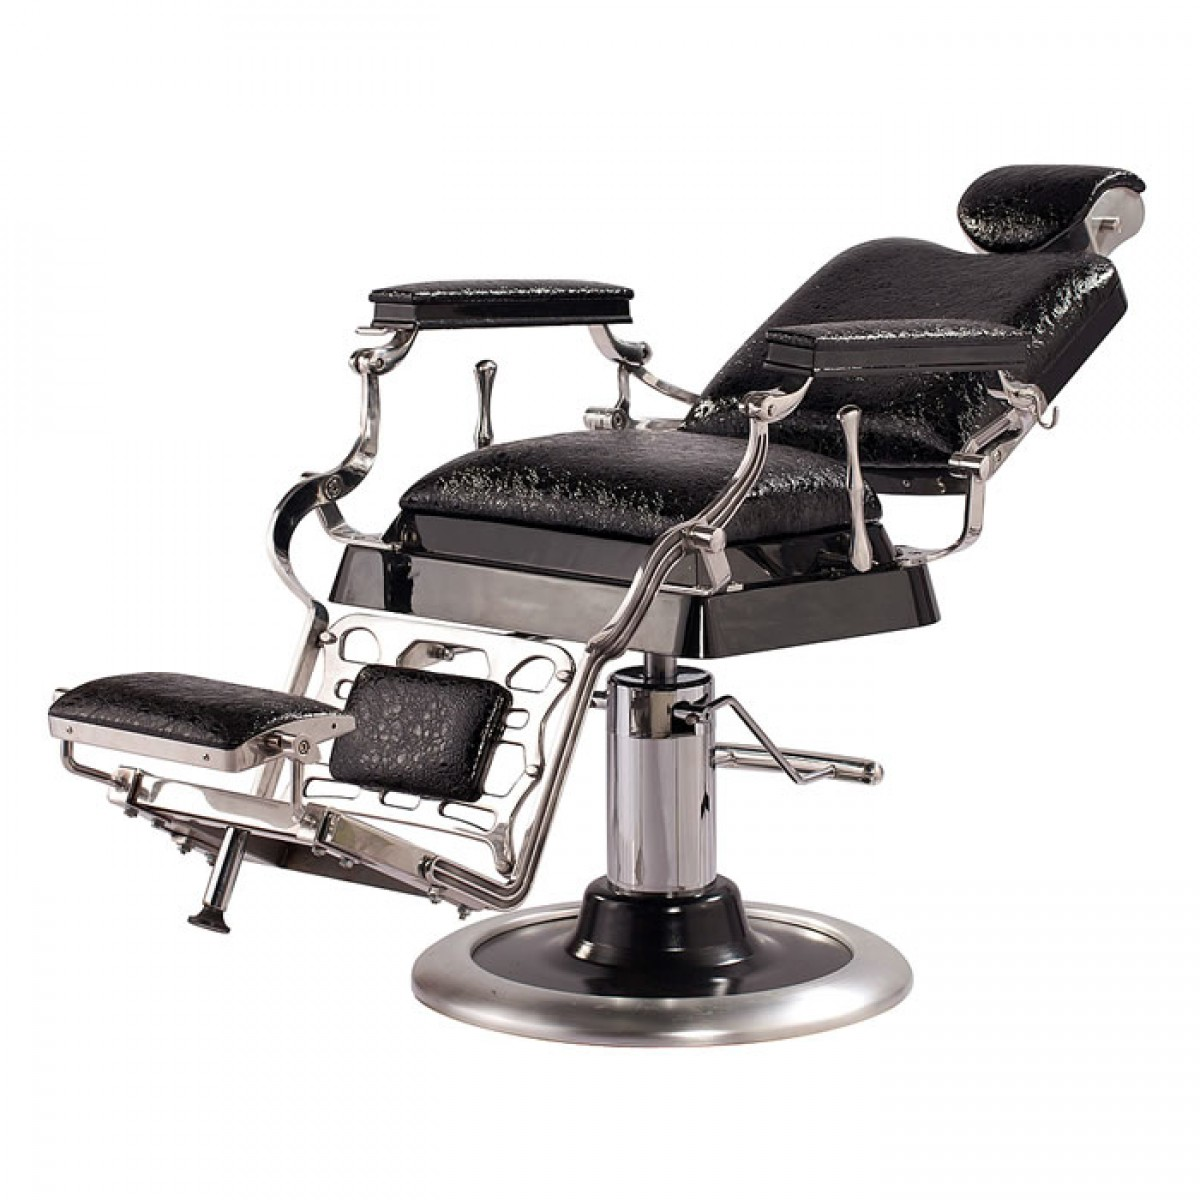 Emperor barber chair antique barber chairs barbershop for Salon equipment prices